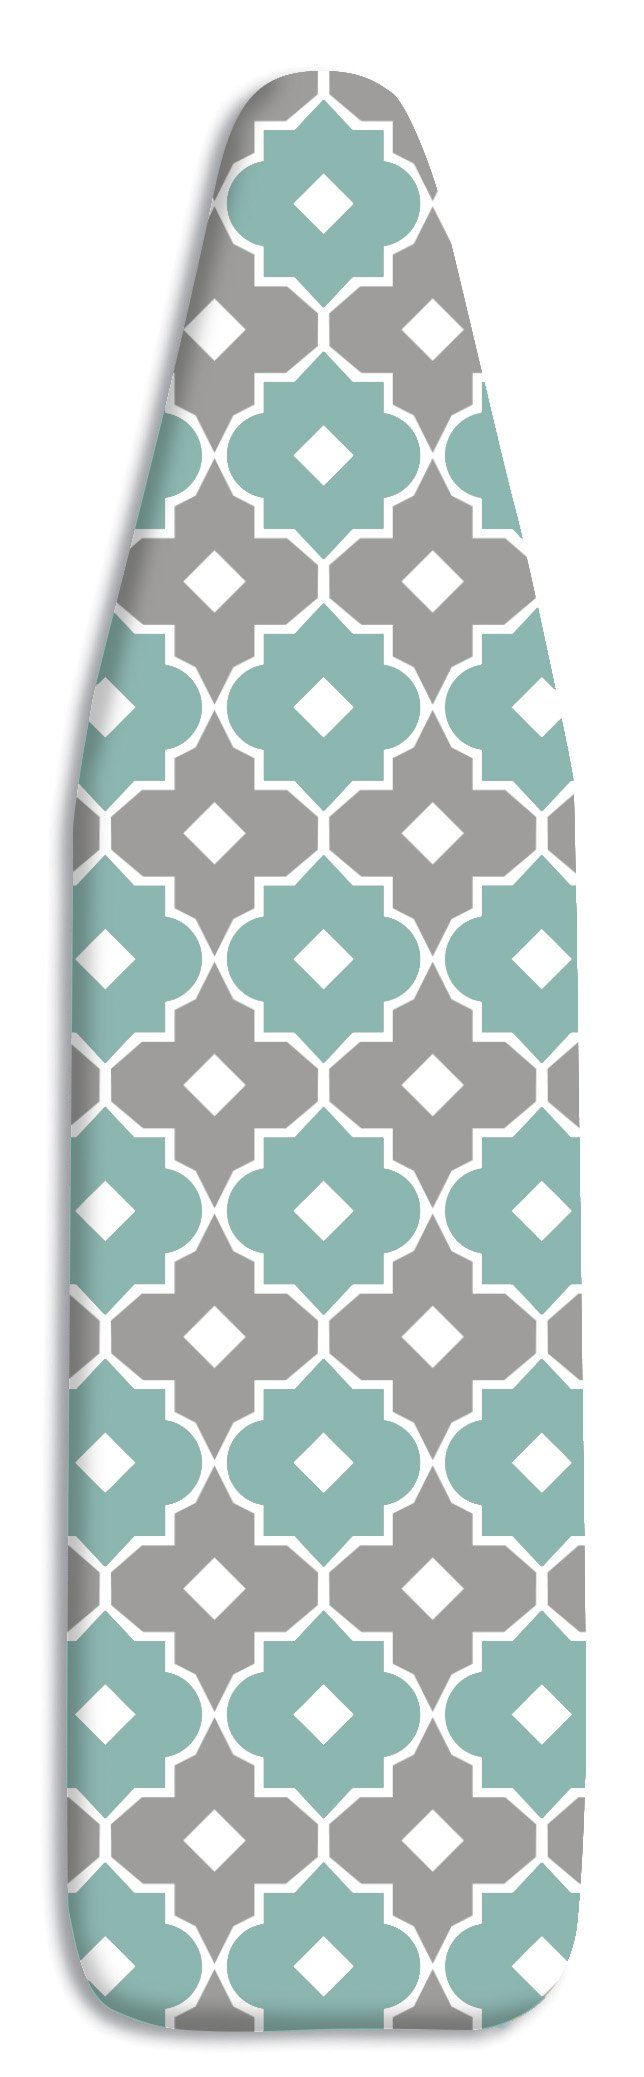 Whitmor Supreme Ironing Board Cover and Pad, Paragon Taupe/Gray